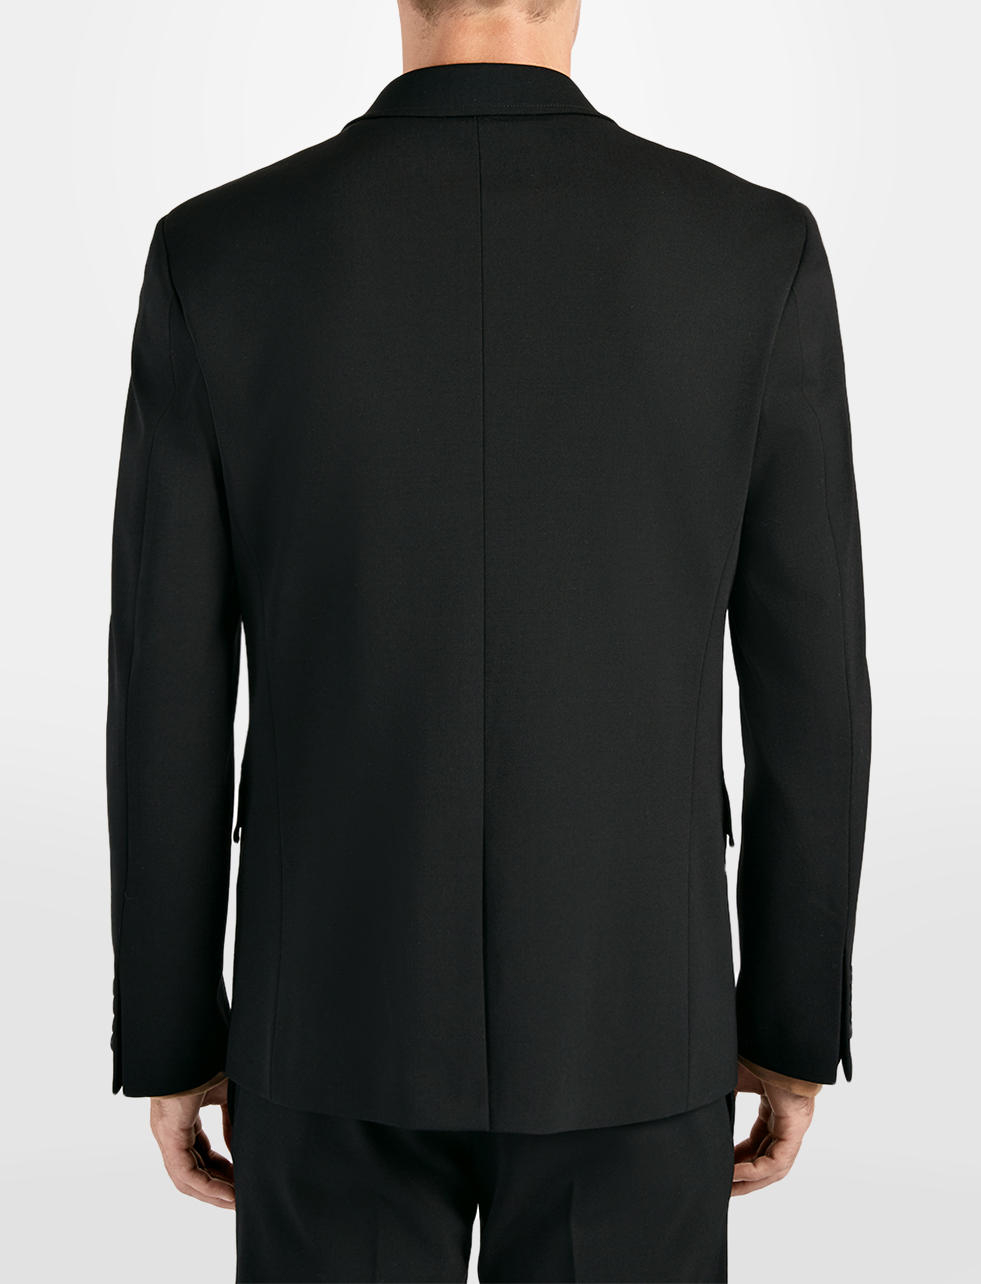 JOSEPH Techno Wool Stretch Reading Jacket in Black (Blue) for Men